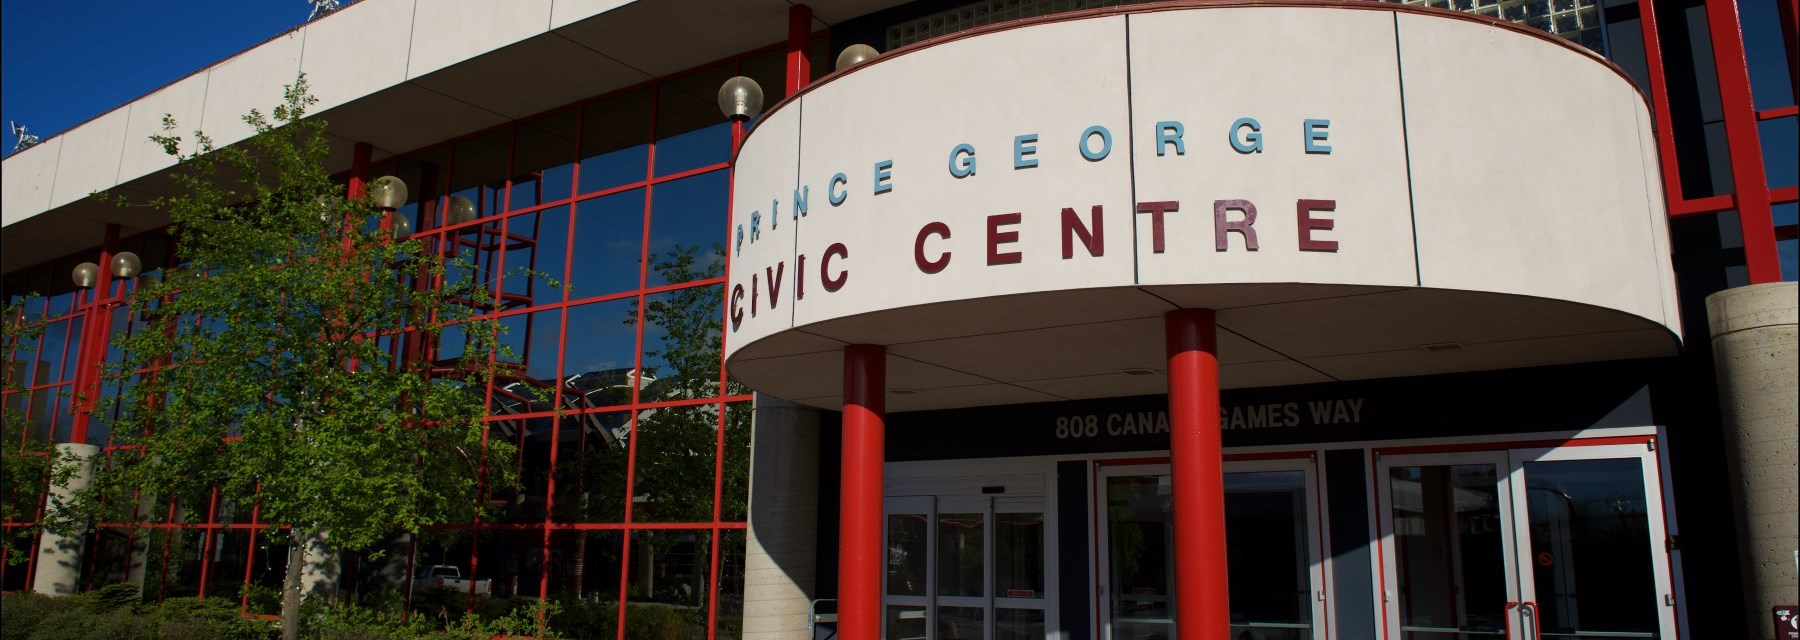 Prince George Conference and Civic Centre Main Entrance